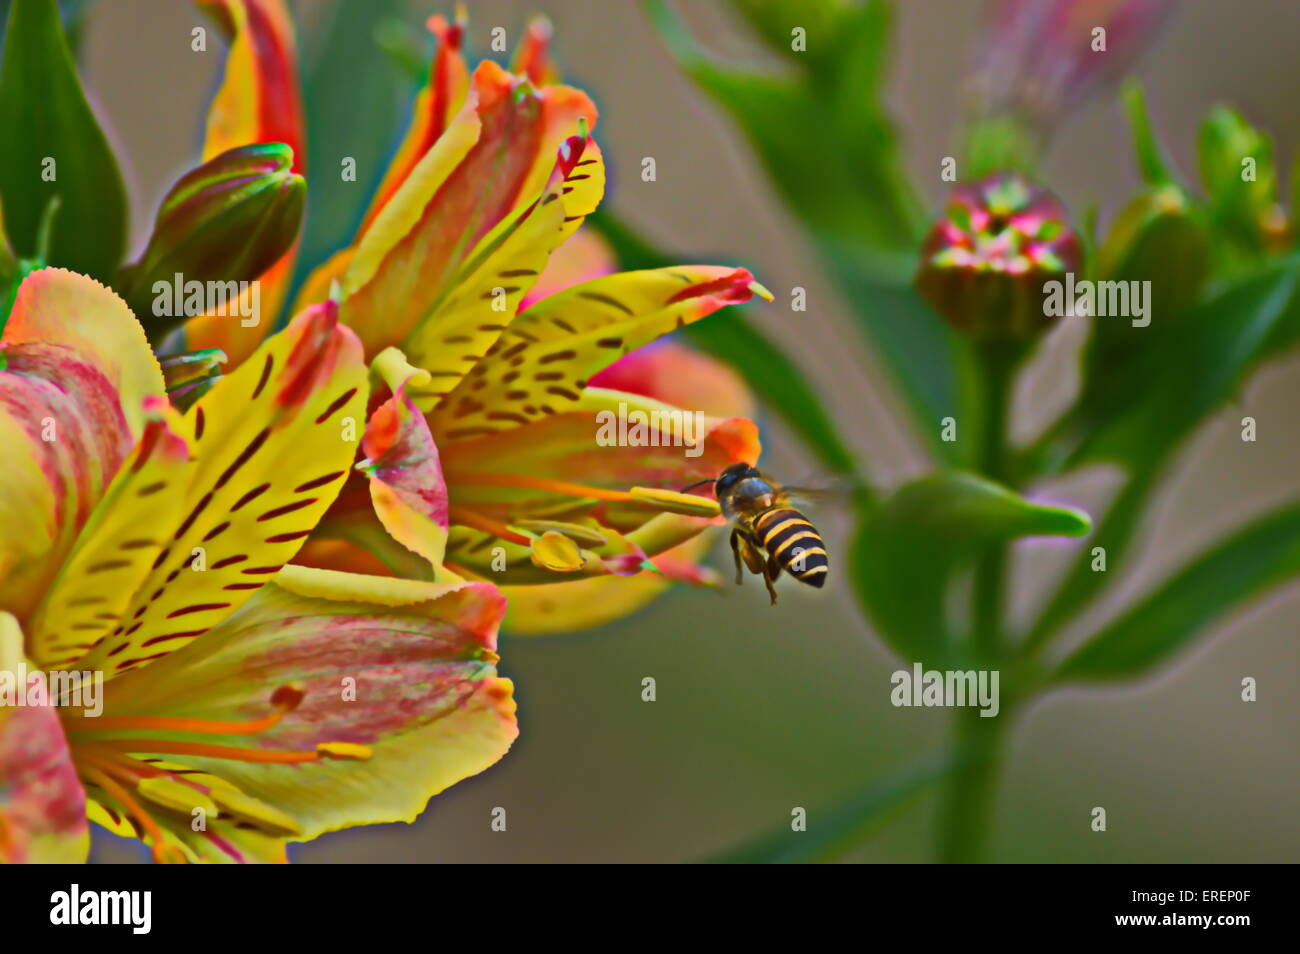 Hovering Honey Bee Yellow Flowers Orchids Rare Stock Photo